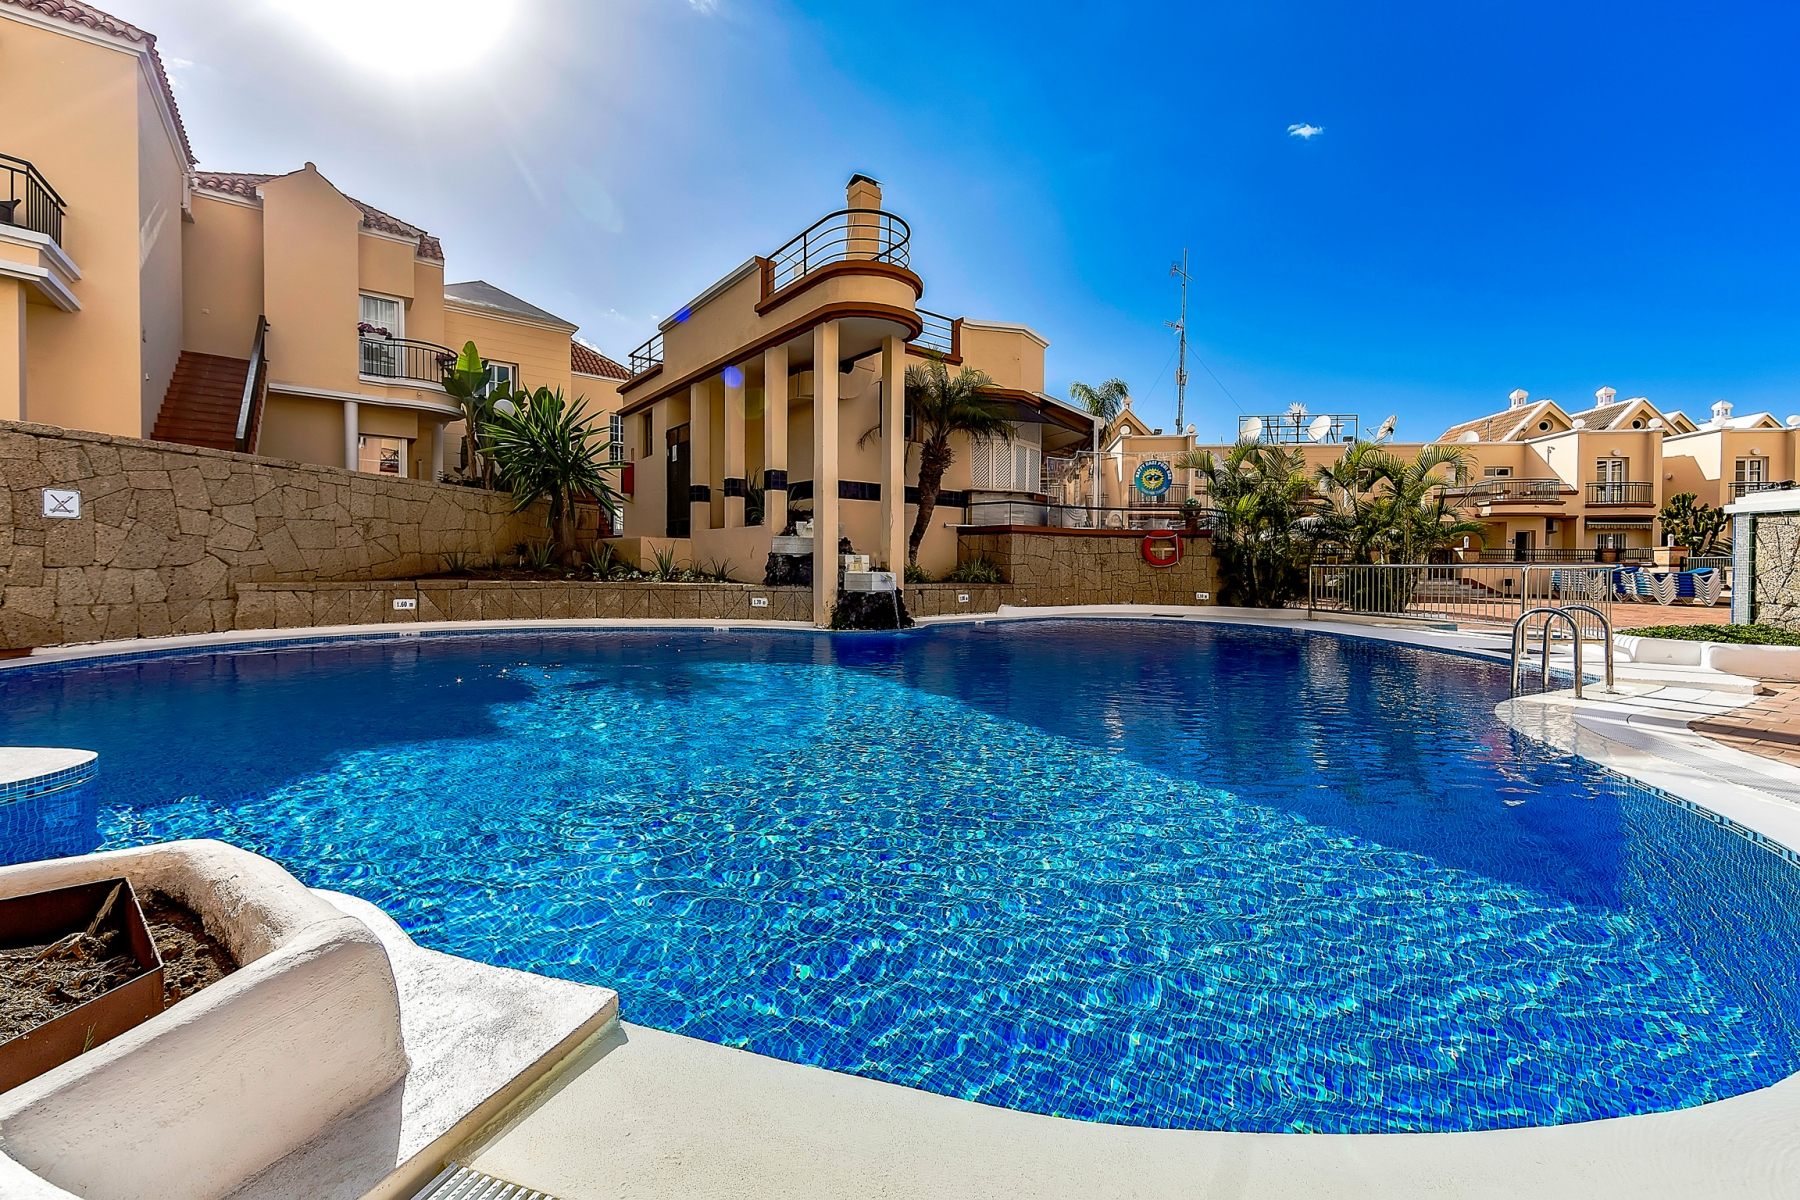 Properties for Sale in Tenerife, Canary Islands, Spain | SylkWayStar Real Estate. 1 bedroom apartment Yucca Park. Image-22605